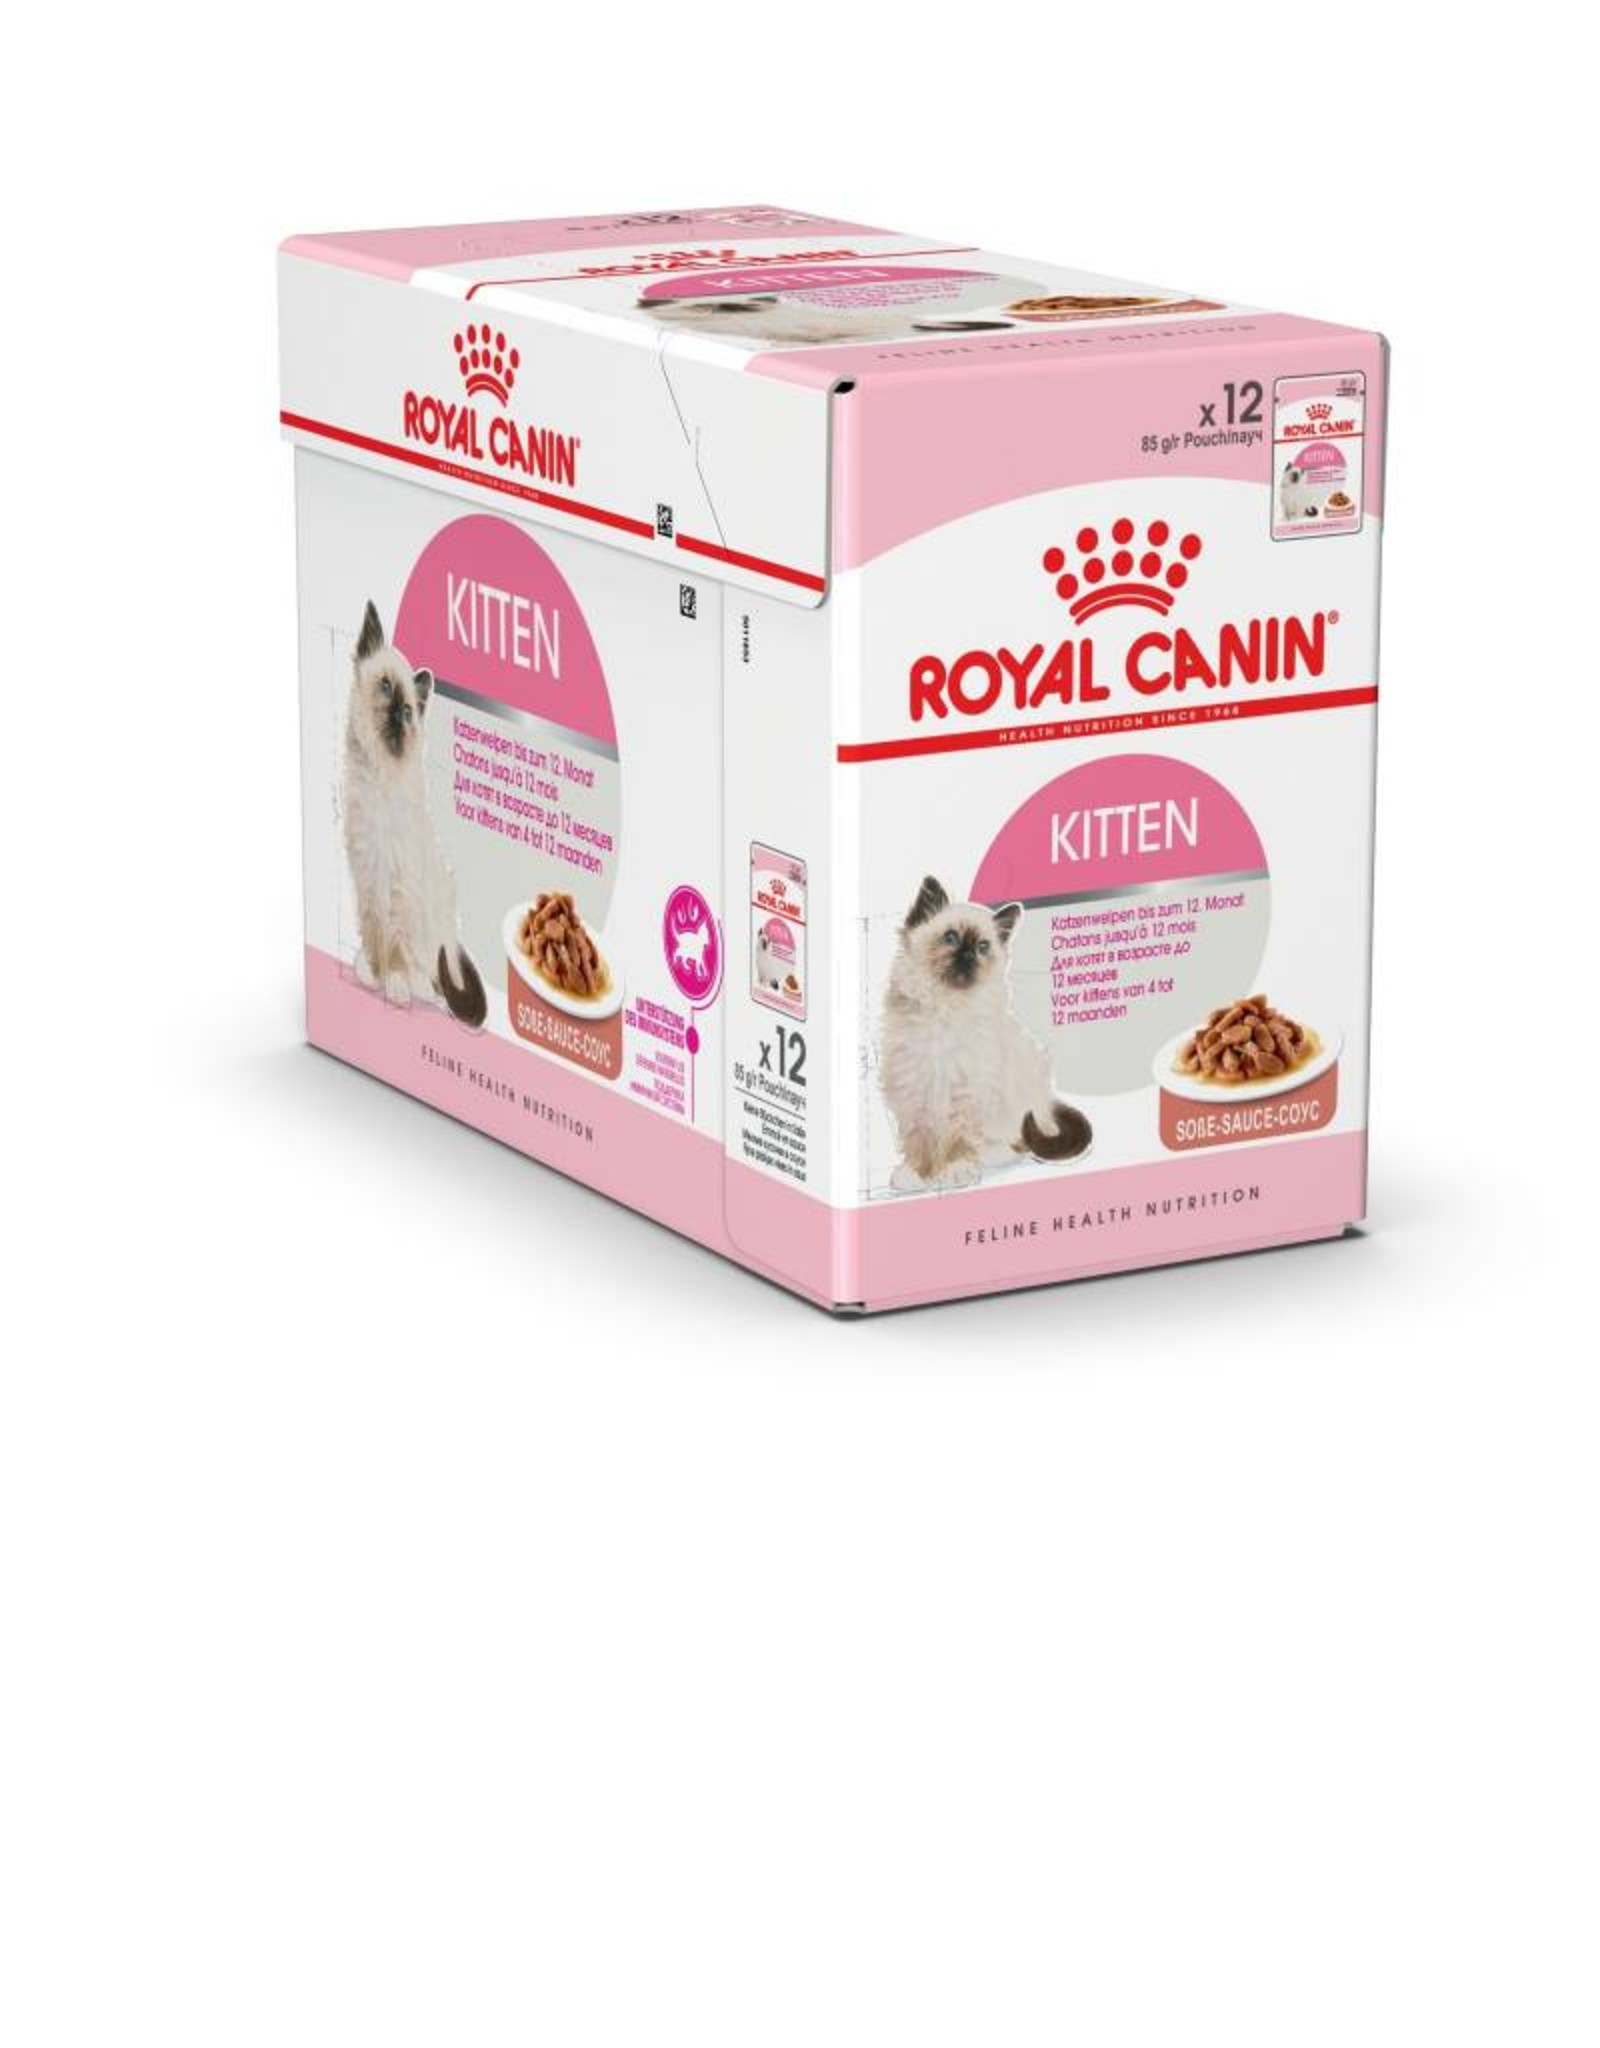 Royal Canin Kitten Wet Food Pouch with Gravy, 85g, box of 12